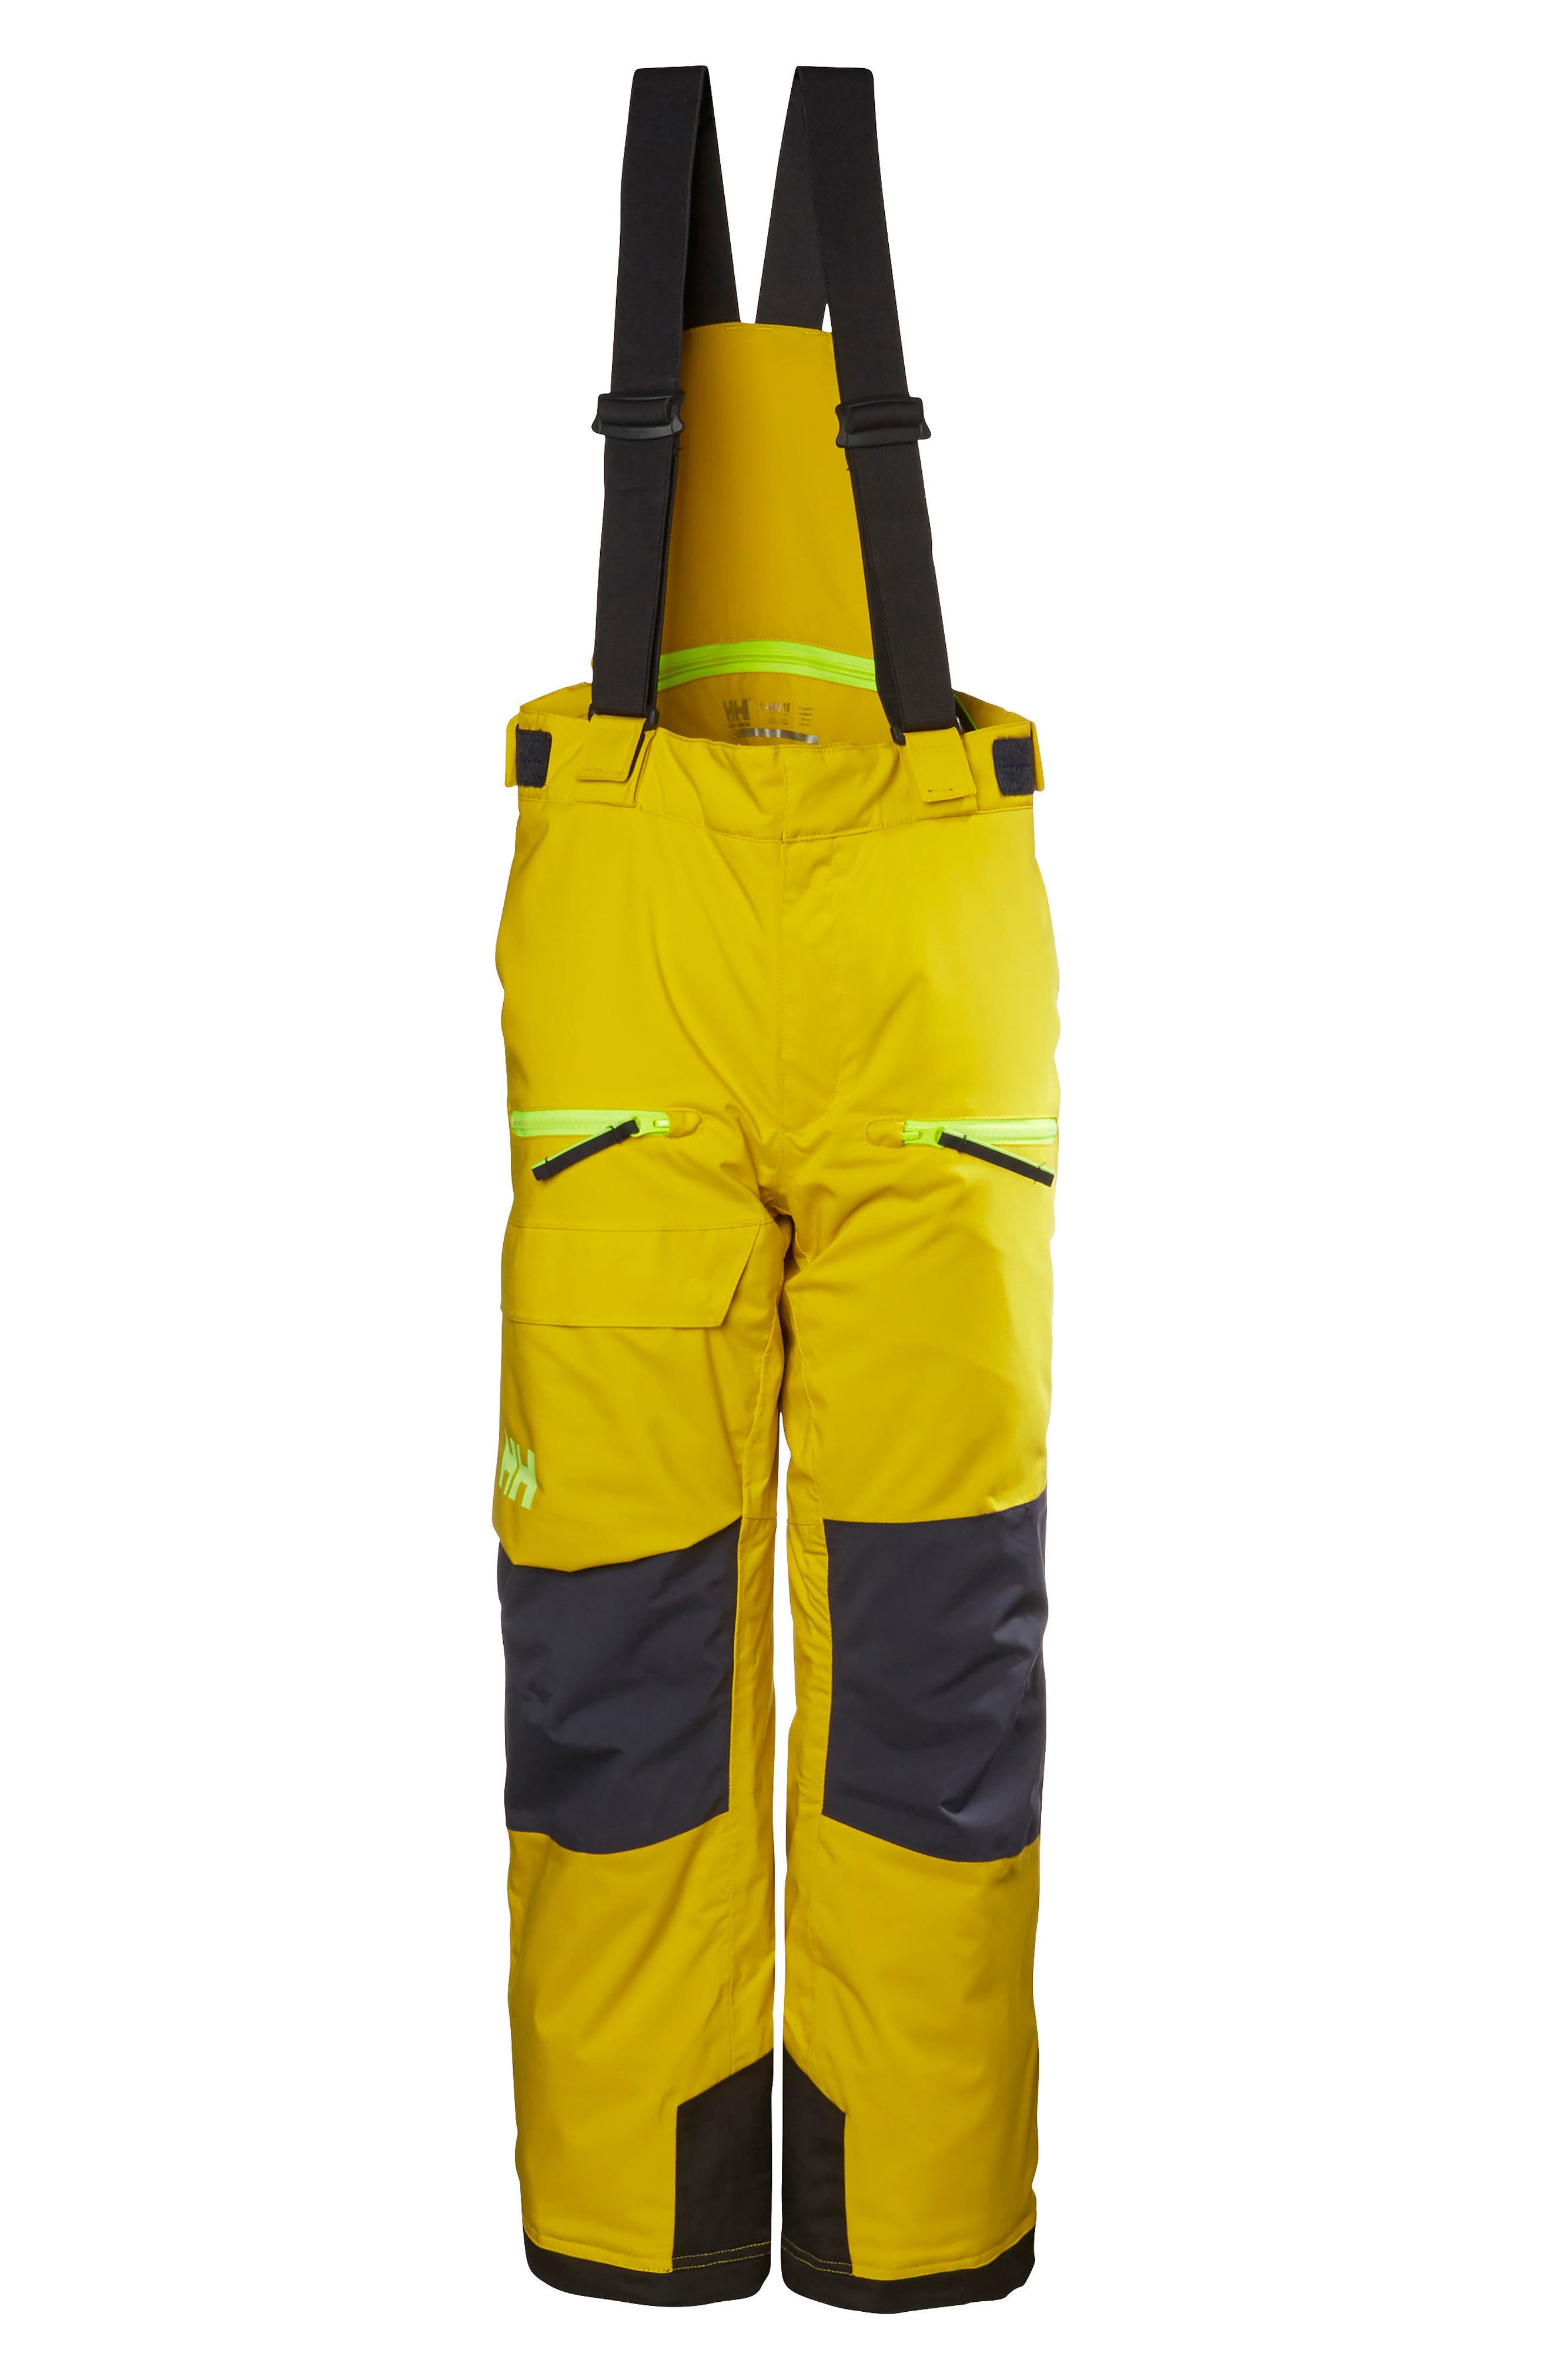 Main Image - Helly Hansen Jr. Powder Waterproof Ski Pants (Big Boys)